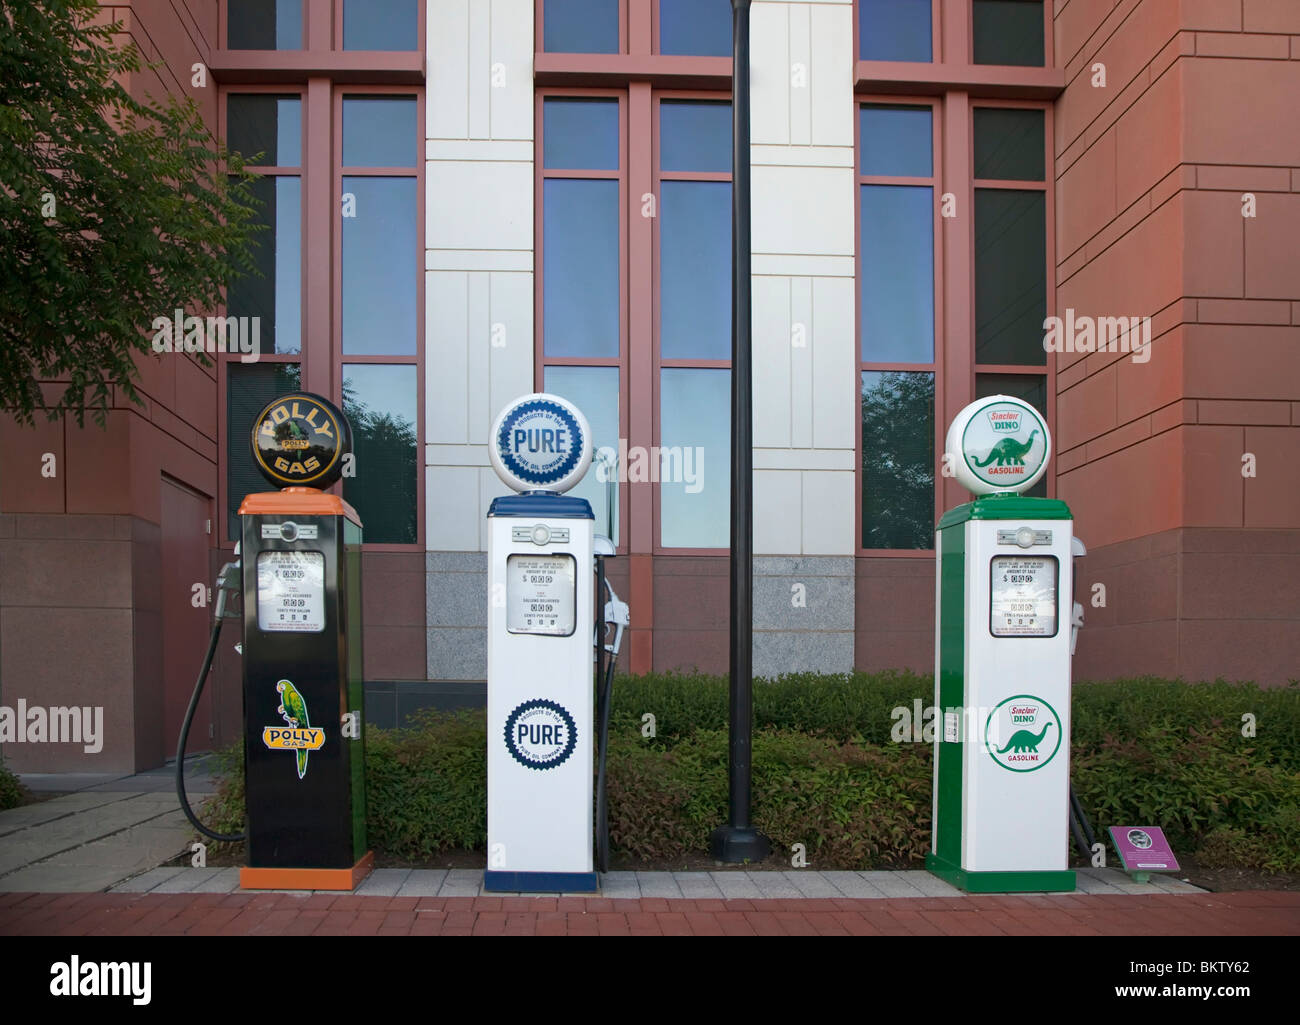 Washington, DC - Old-style gasoline pumps outside the offices of the U.S. Department of Transportation. - Stock Image